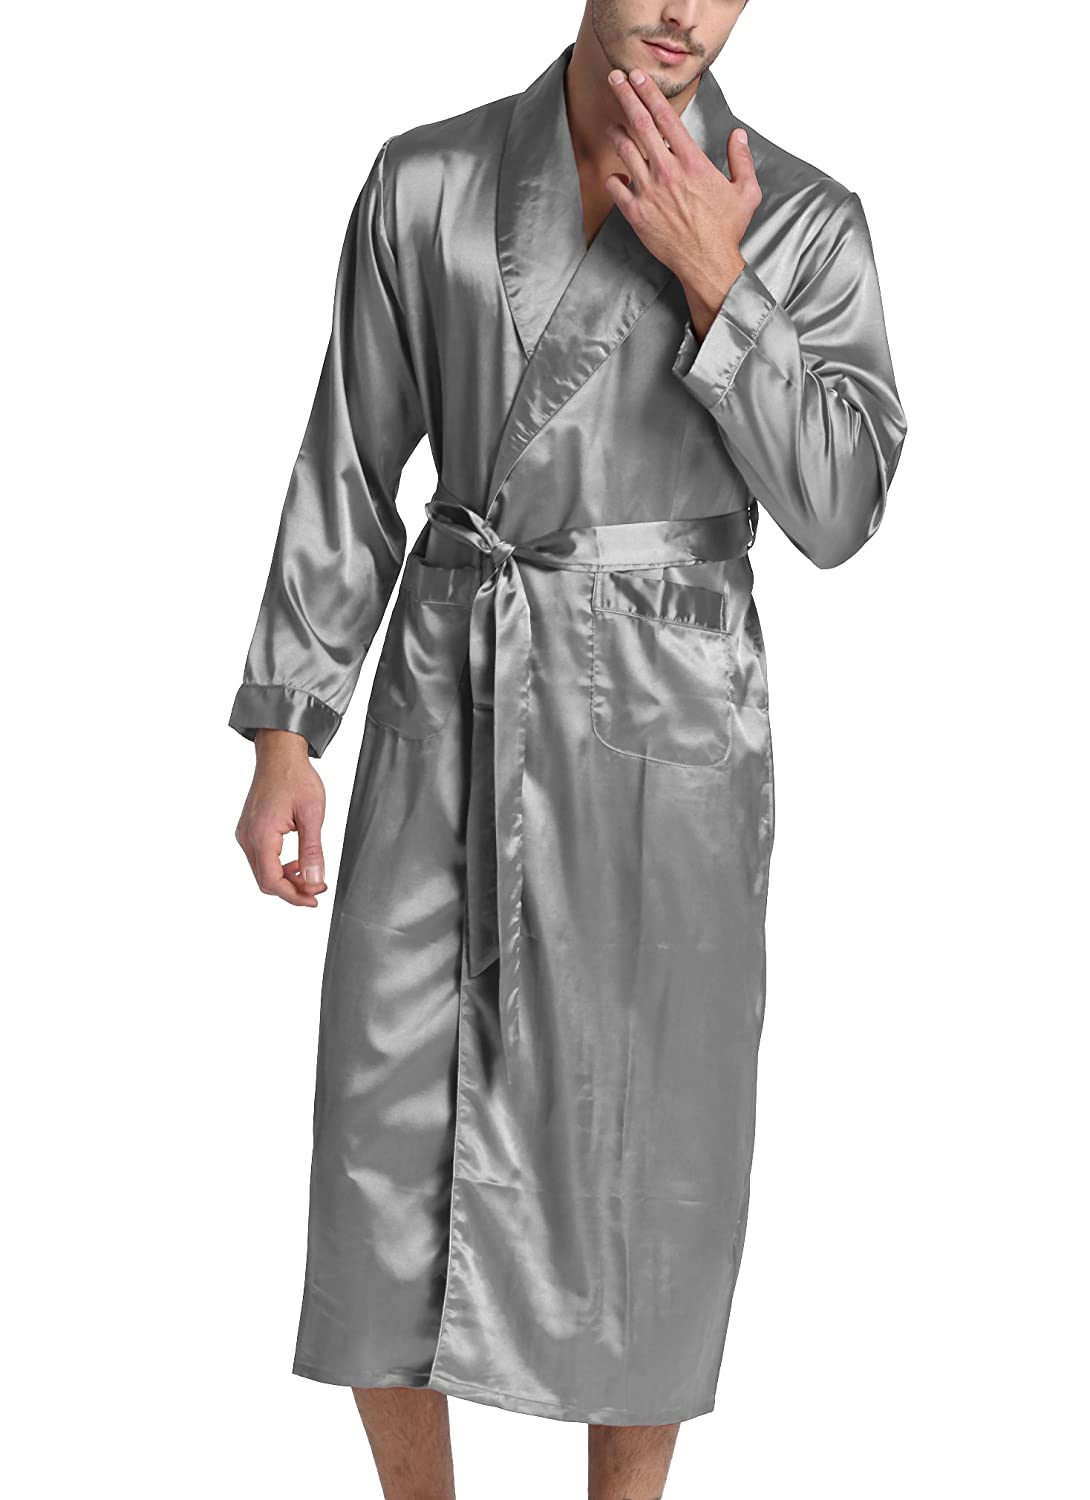 Sanraflic Men's Bathrobes Long Satin Robes Dressing Gowns Shawl Collar Nightwear Sleepwear